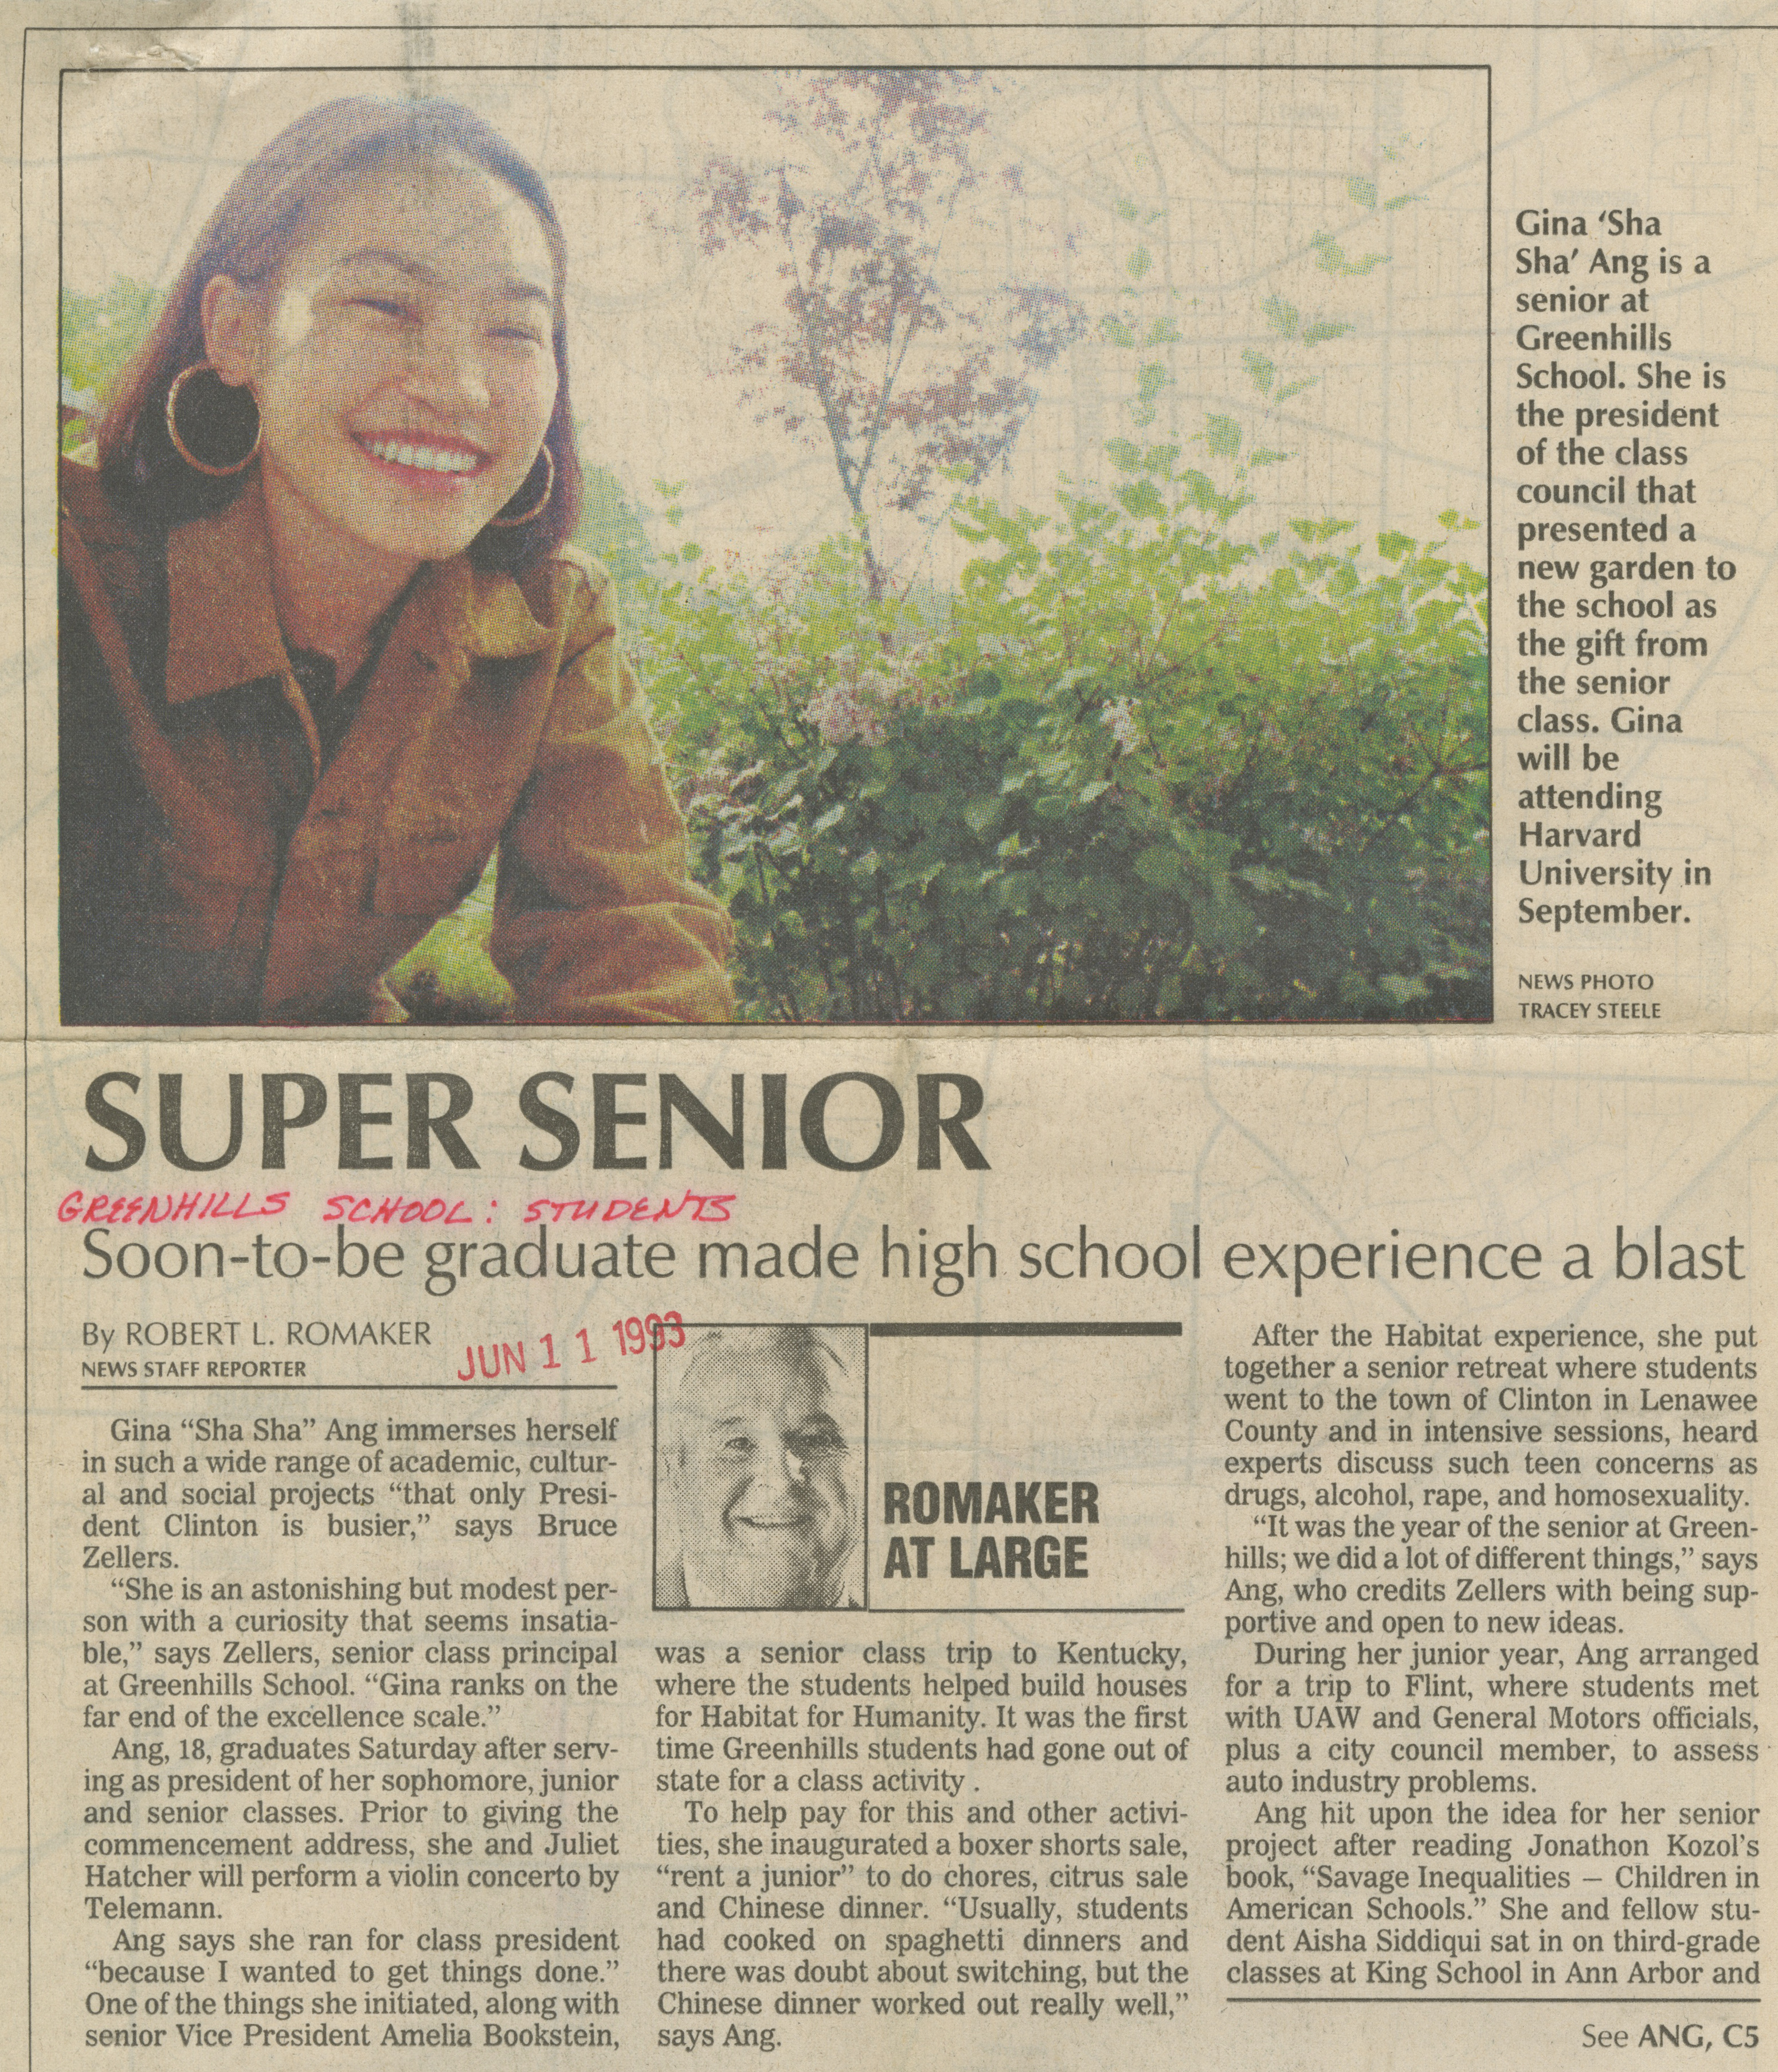 Super Senior image